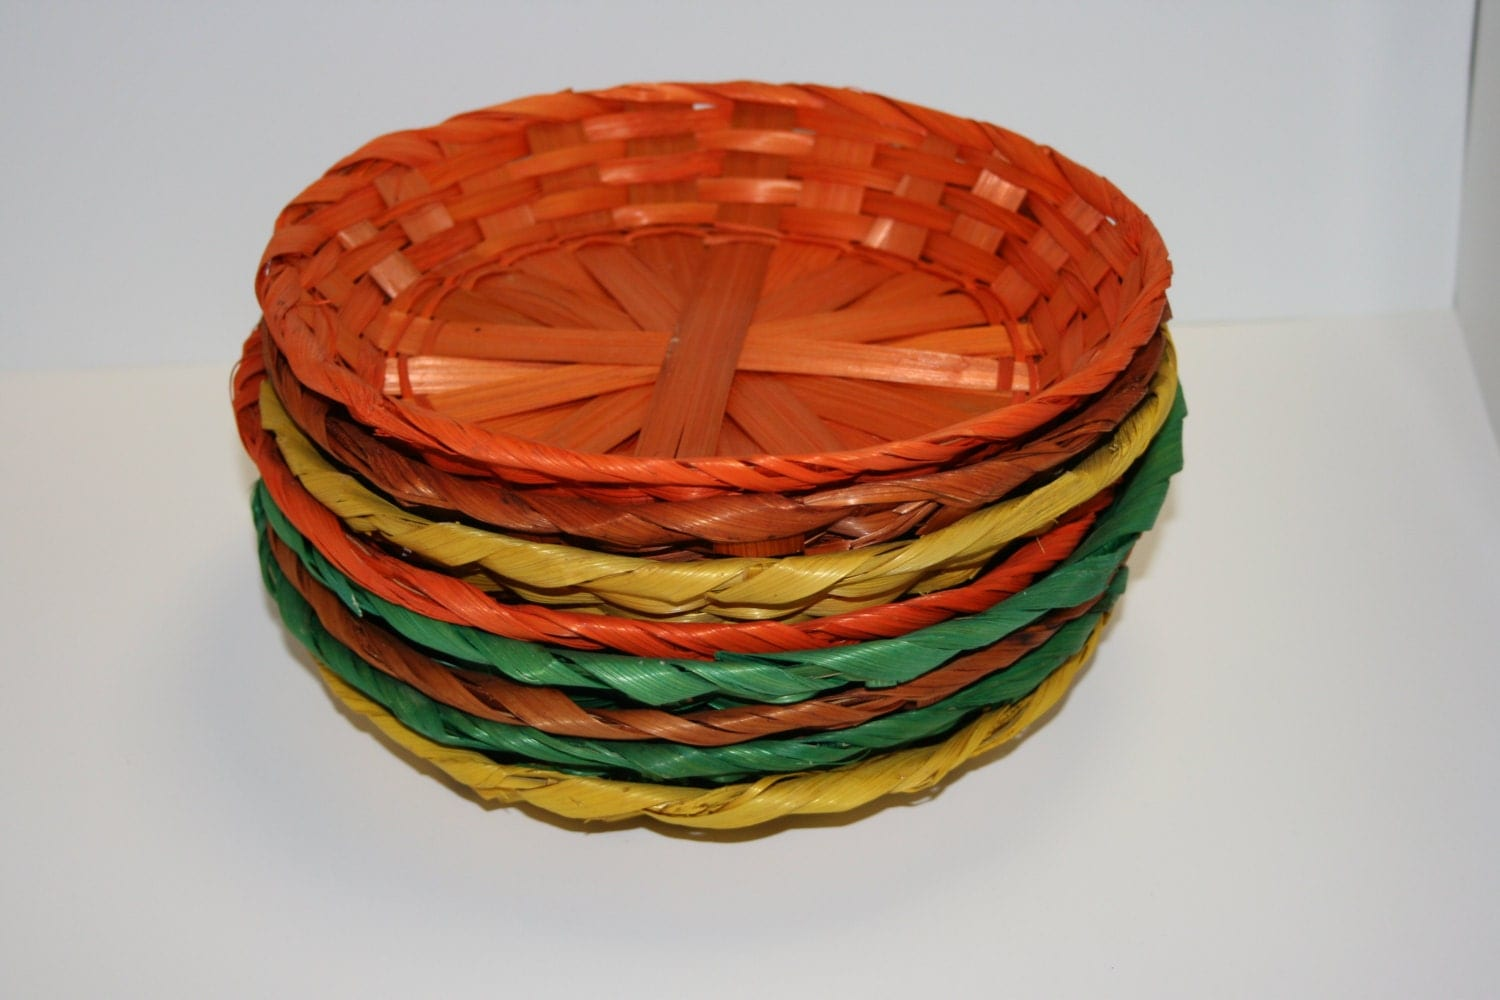 paper plate holder wicker rattan fiesta summer orange. Black Bedroom Furniture Sets. Home Design Ideas